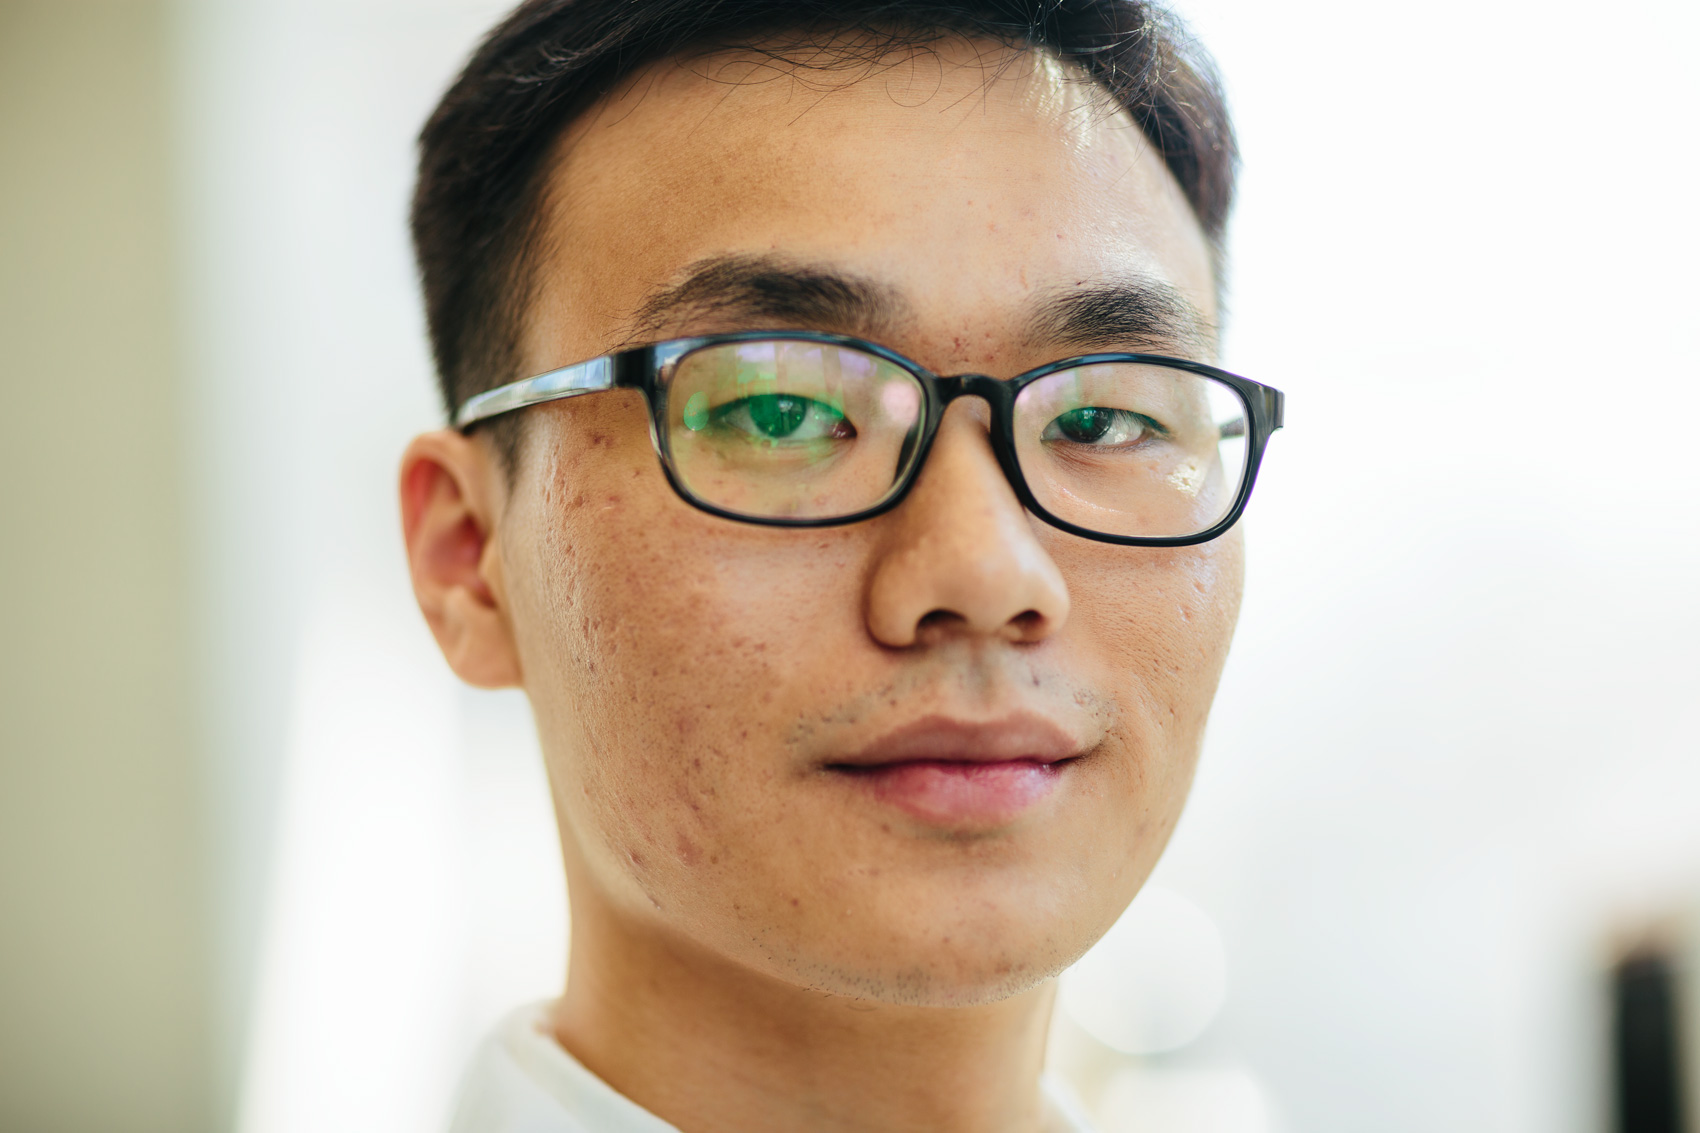 close portrait of student lab worker with glasses, washington dc portrait photography